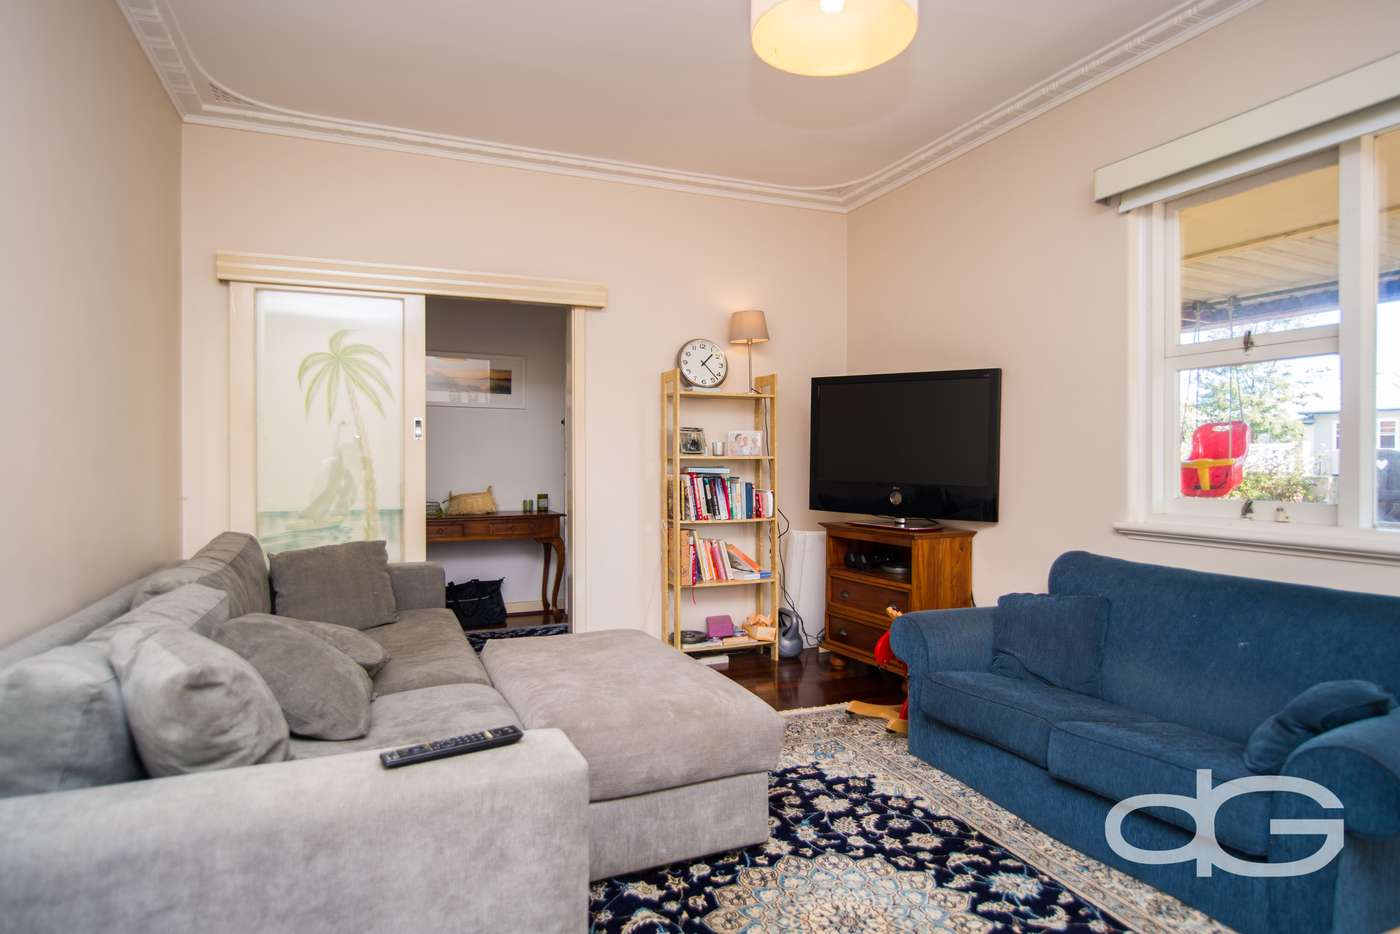 Main view of Homely house listing, 22 Paget Street, Hilton WA 6163